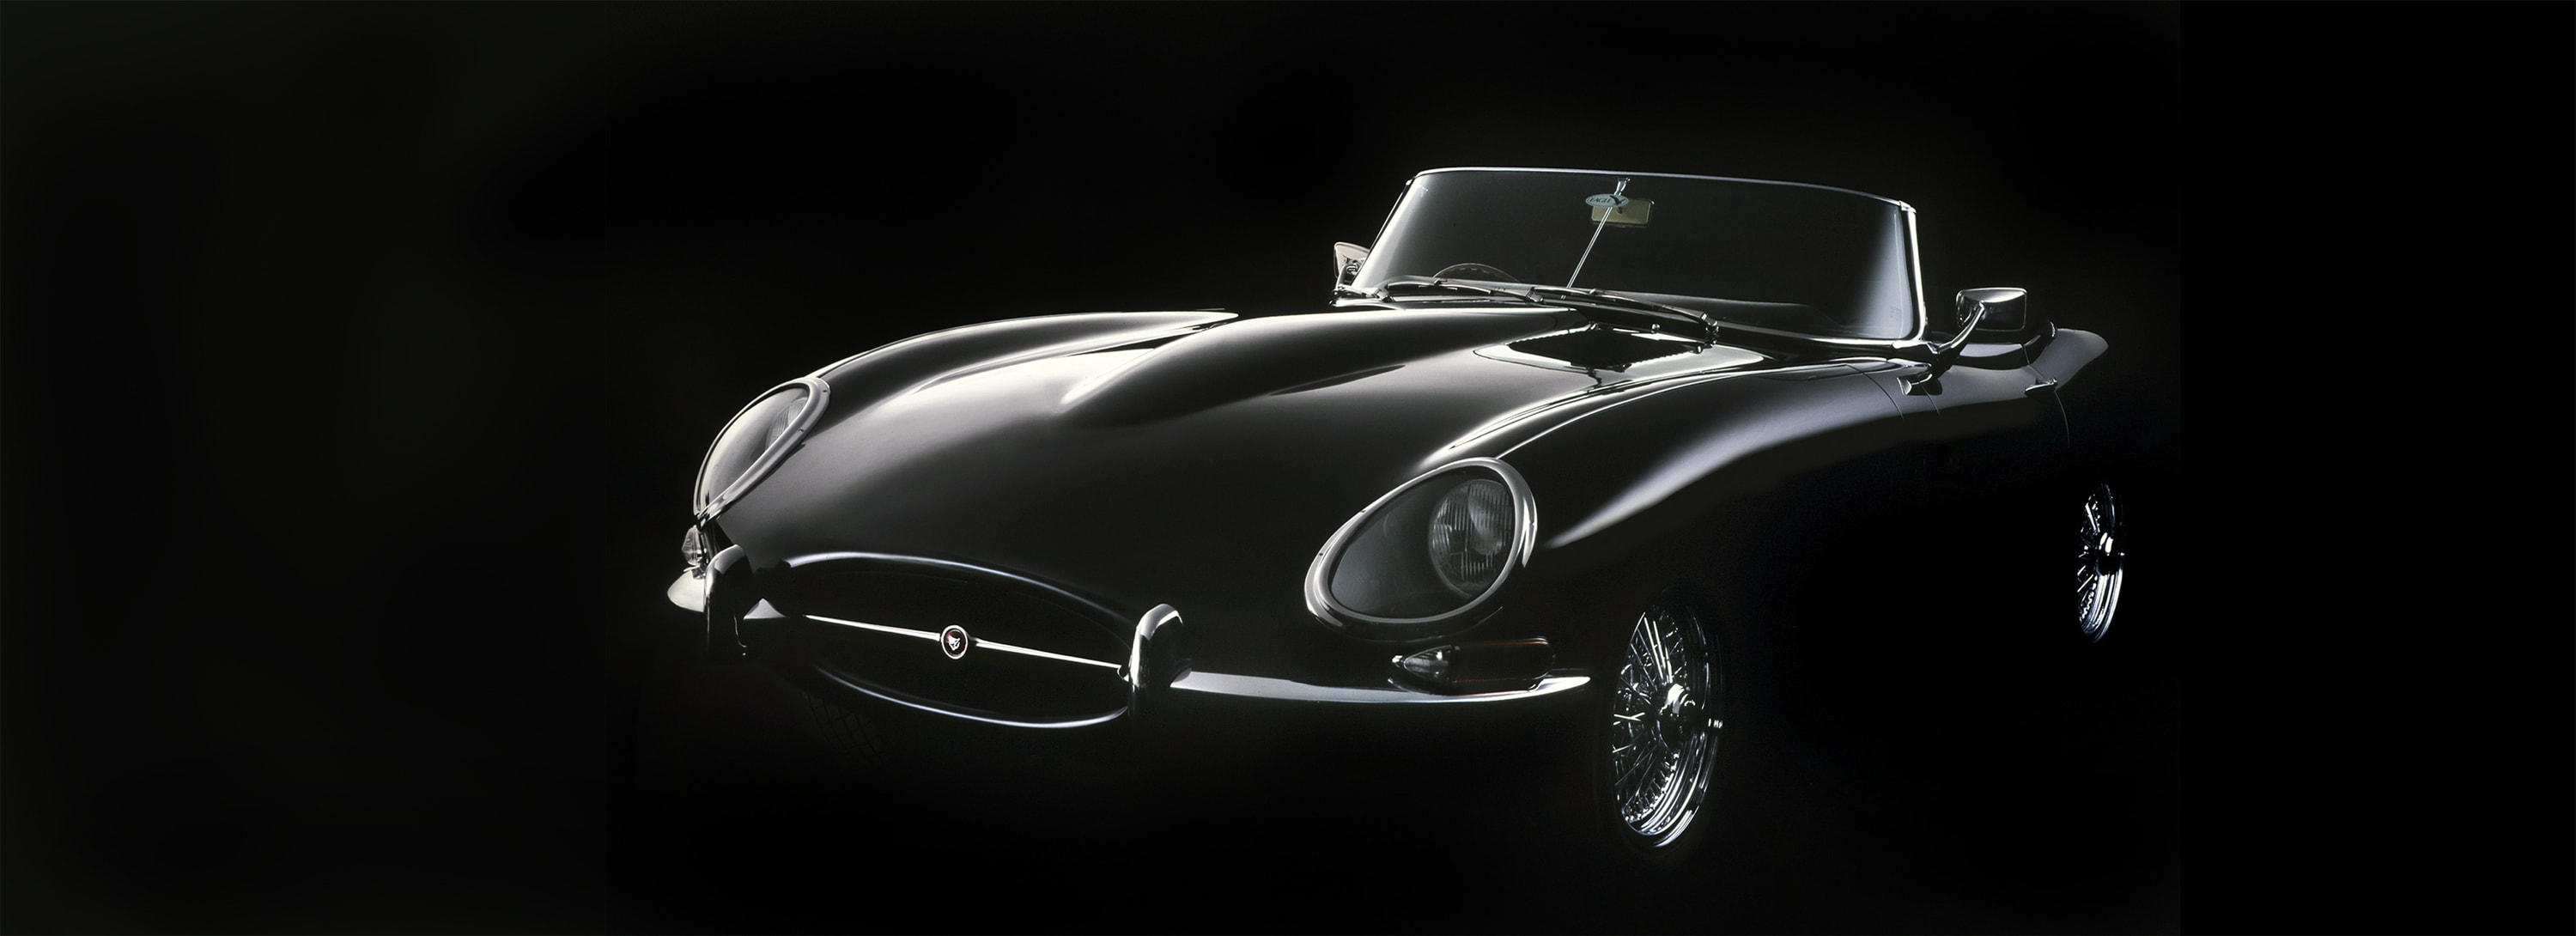 Eagle E Type Jaguar by Paul Busell